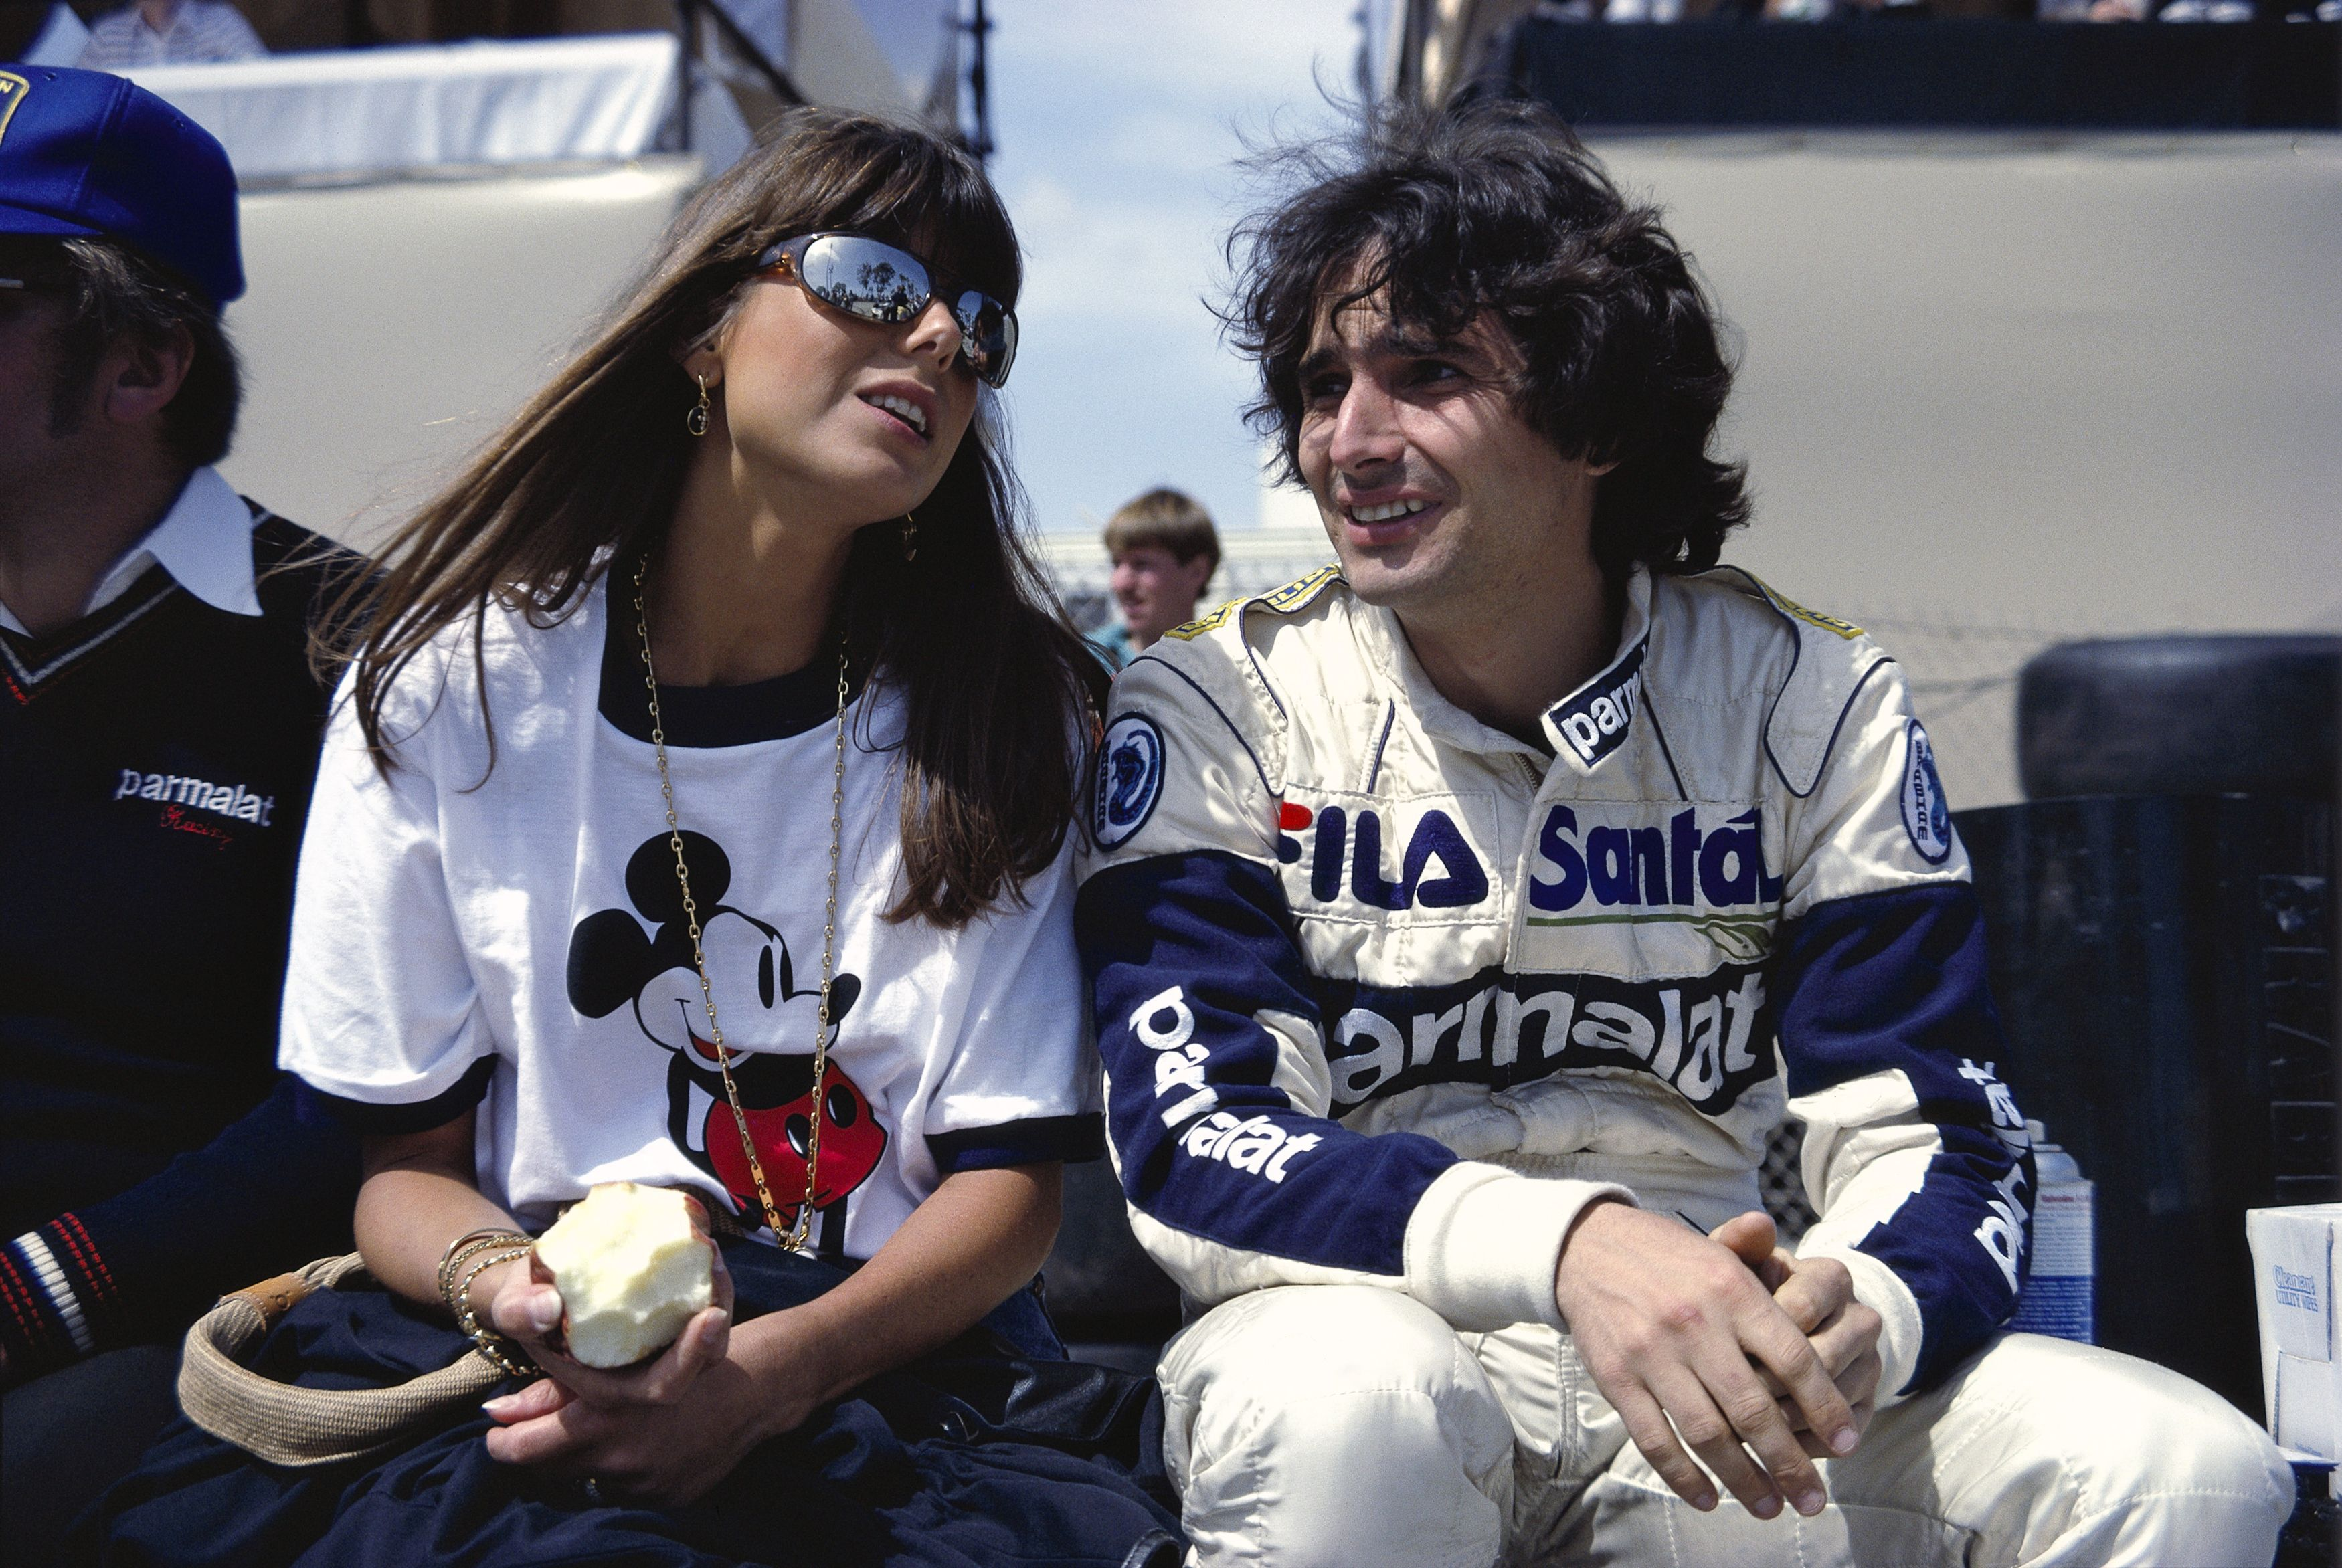 Nelson Piquet The Happy Gypsy Man